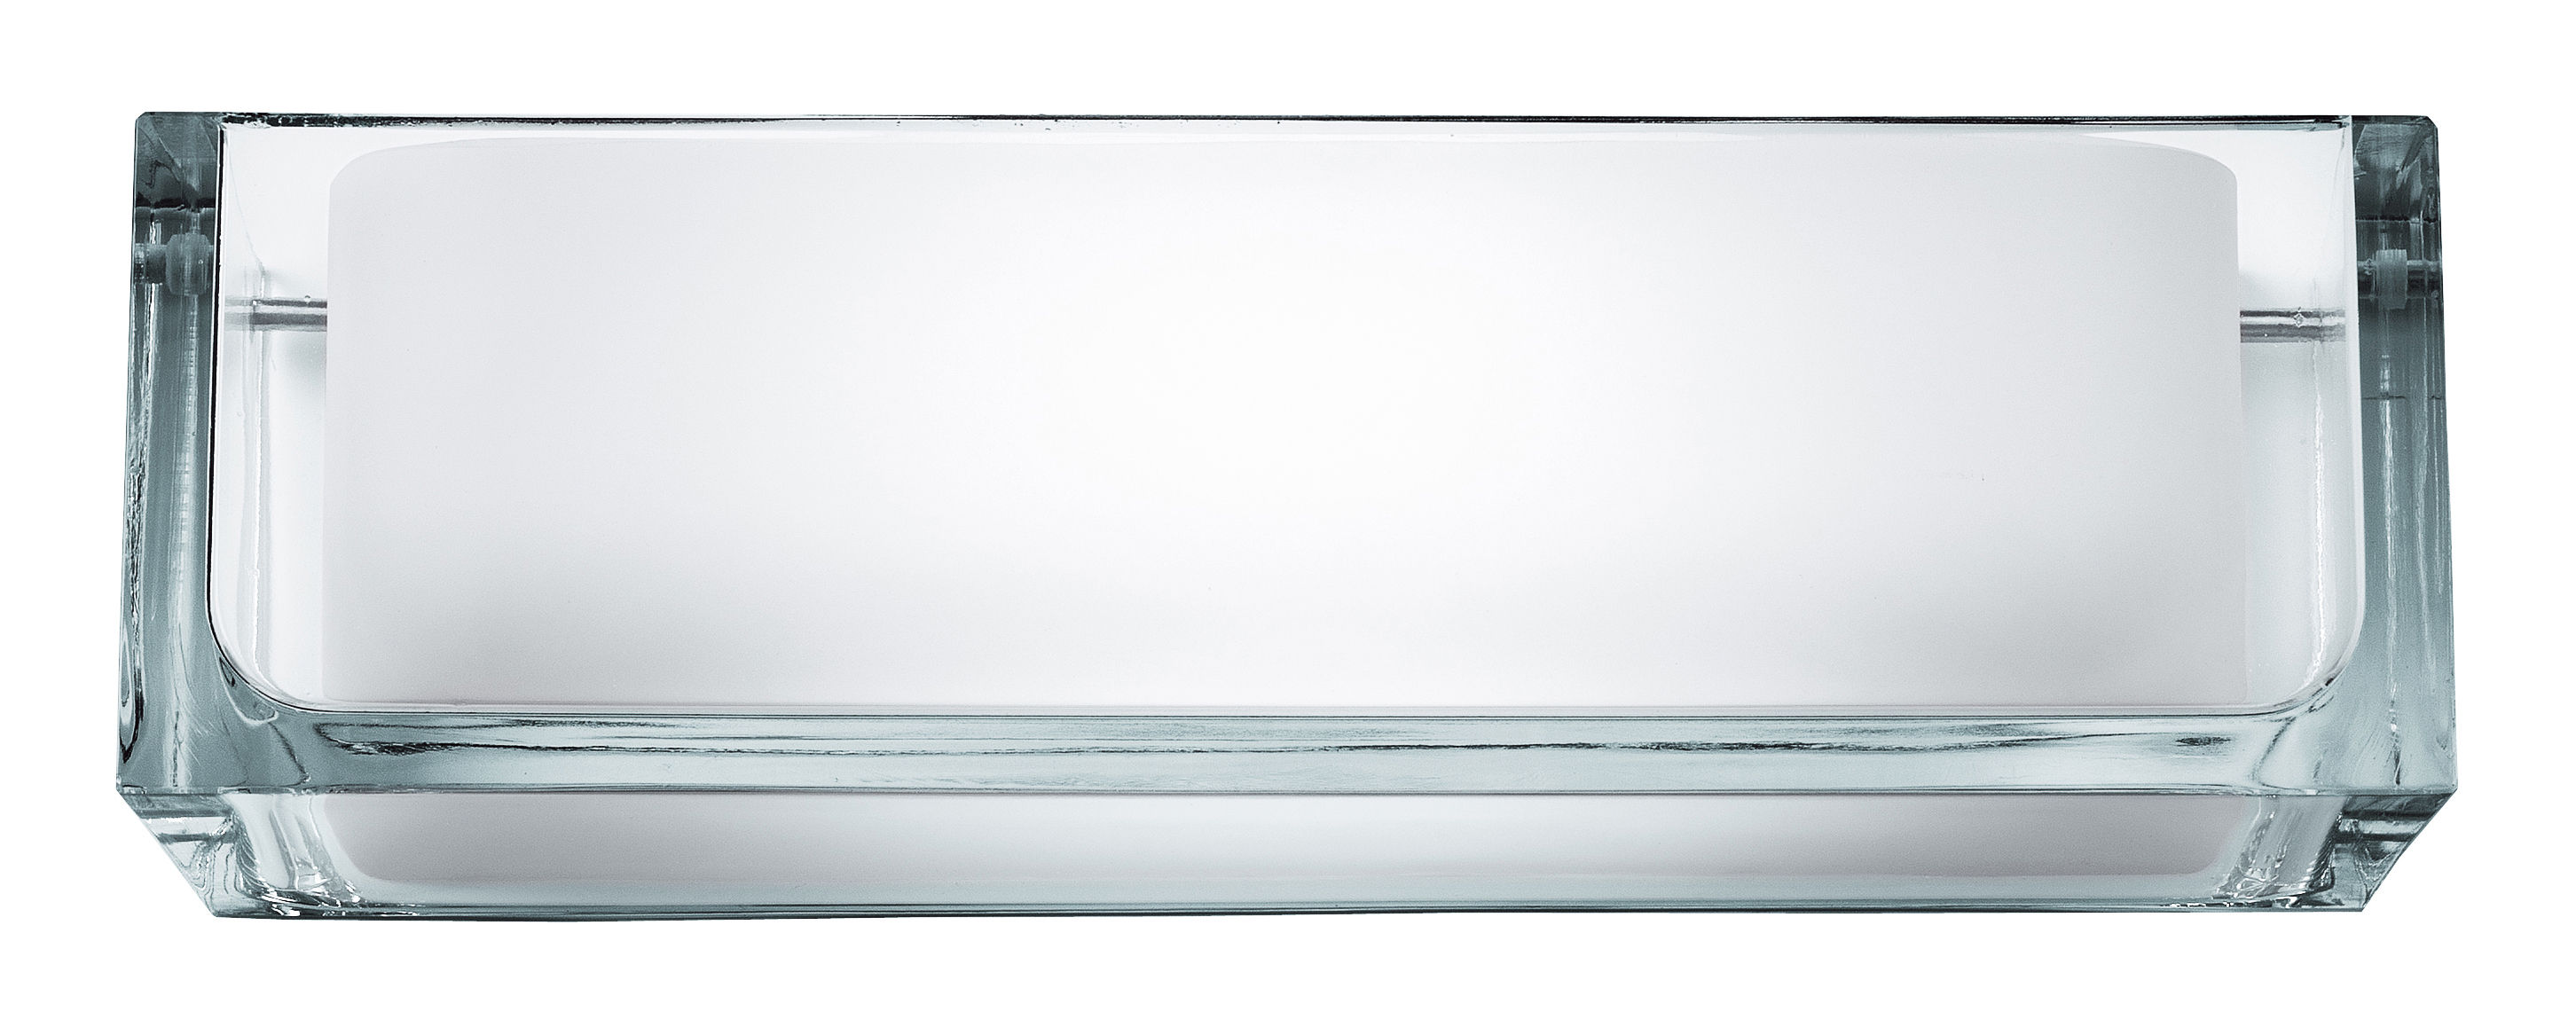 Lighting - Wall Lights - Ontherocks 1 HL Wall light by Flos - Glass - Glass